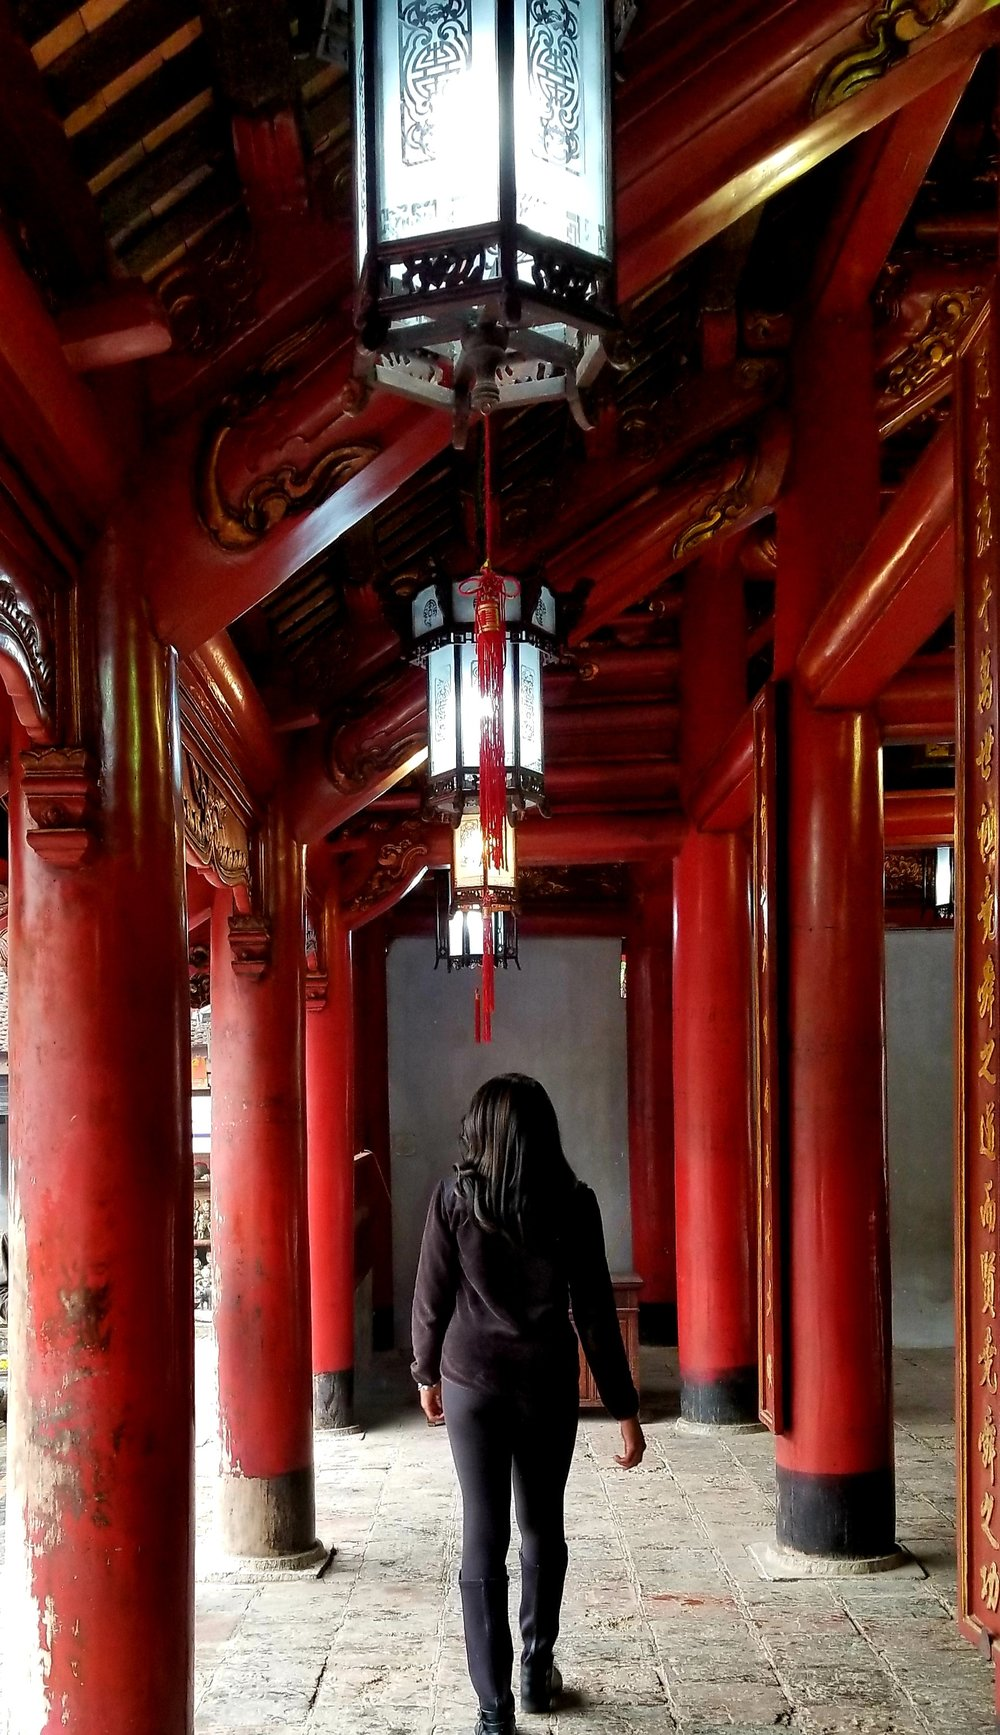 Temple of Literature, Hanoi Vietnam. Photo Courtesy Jasmine Thurston